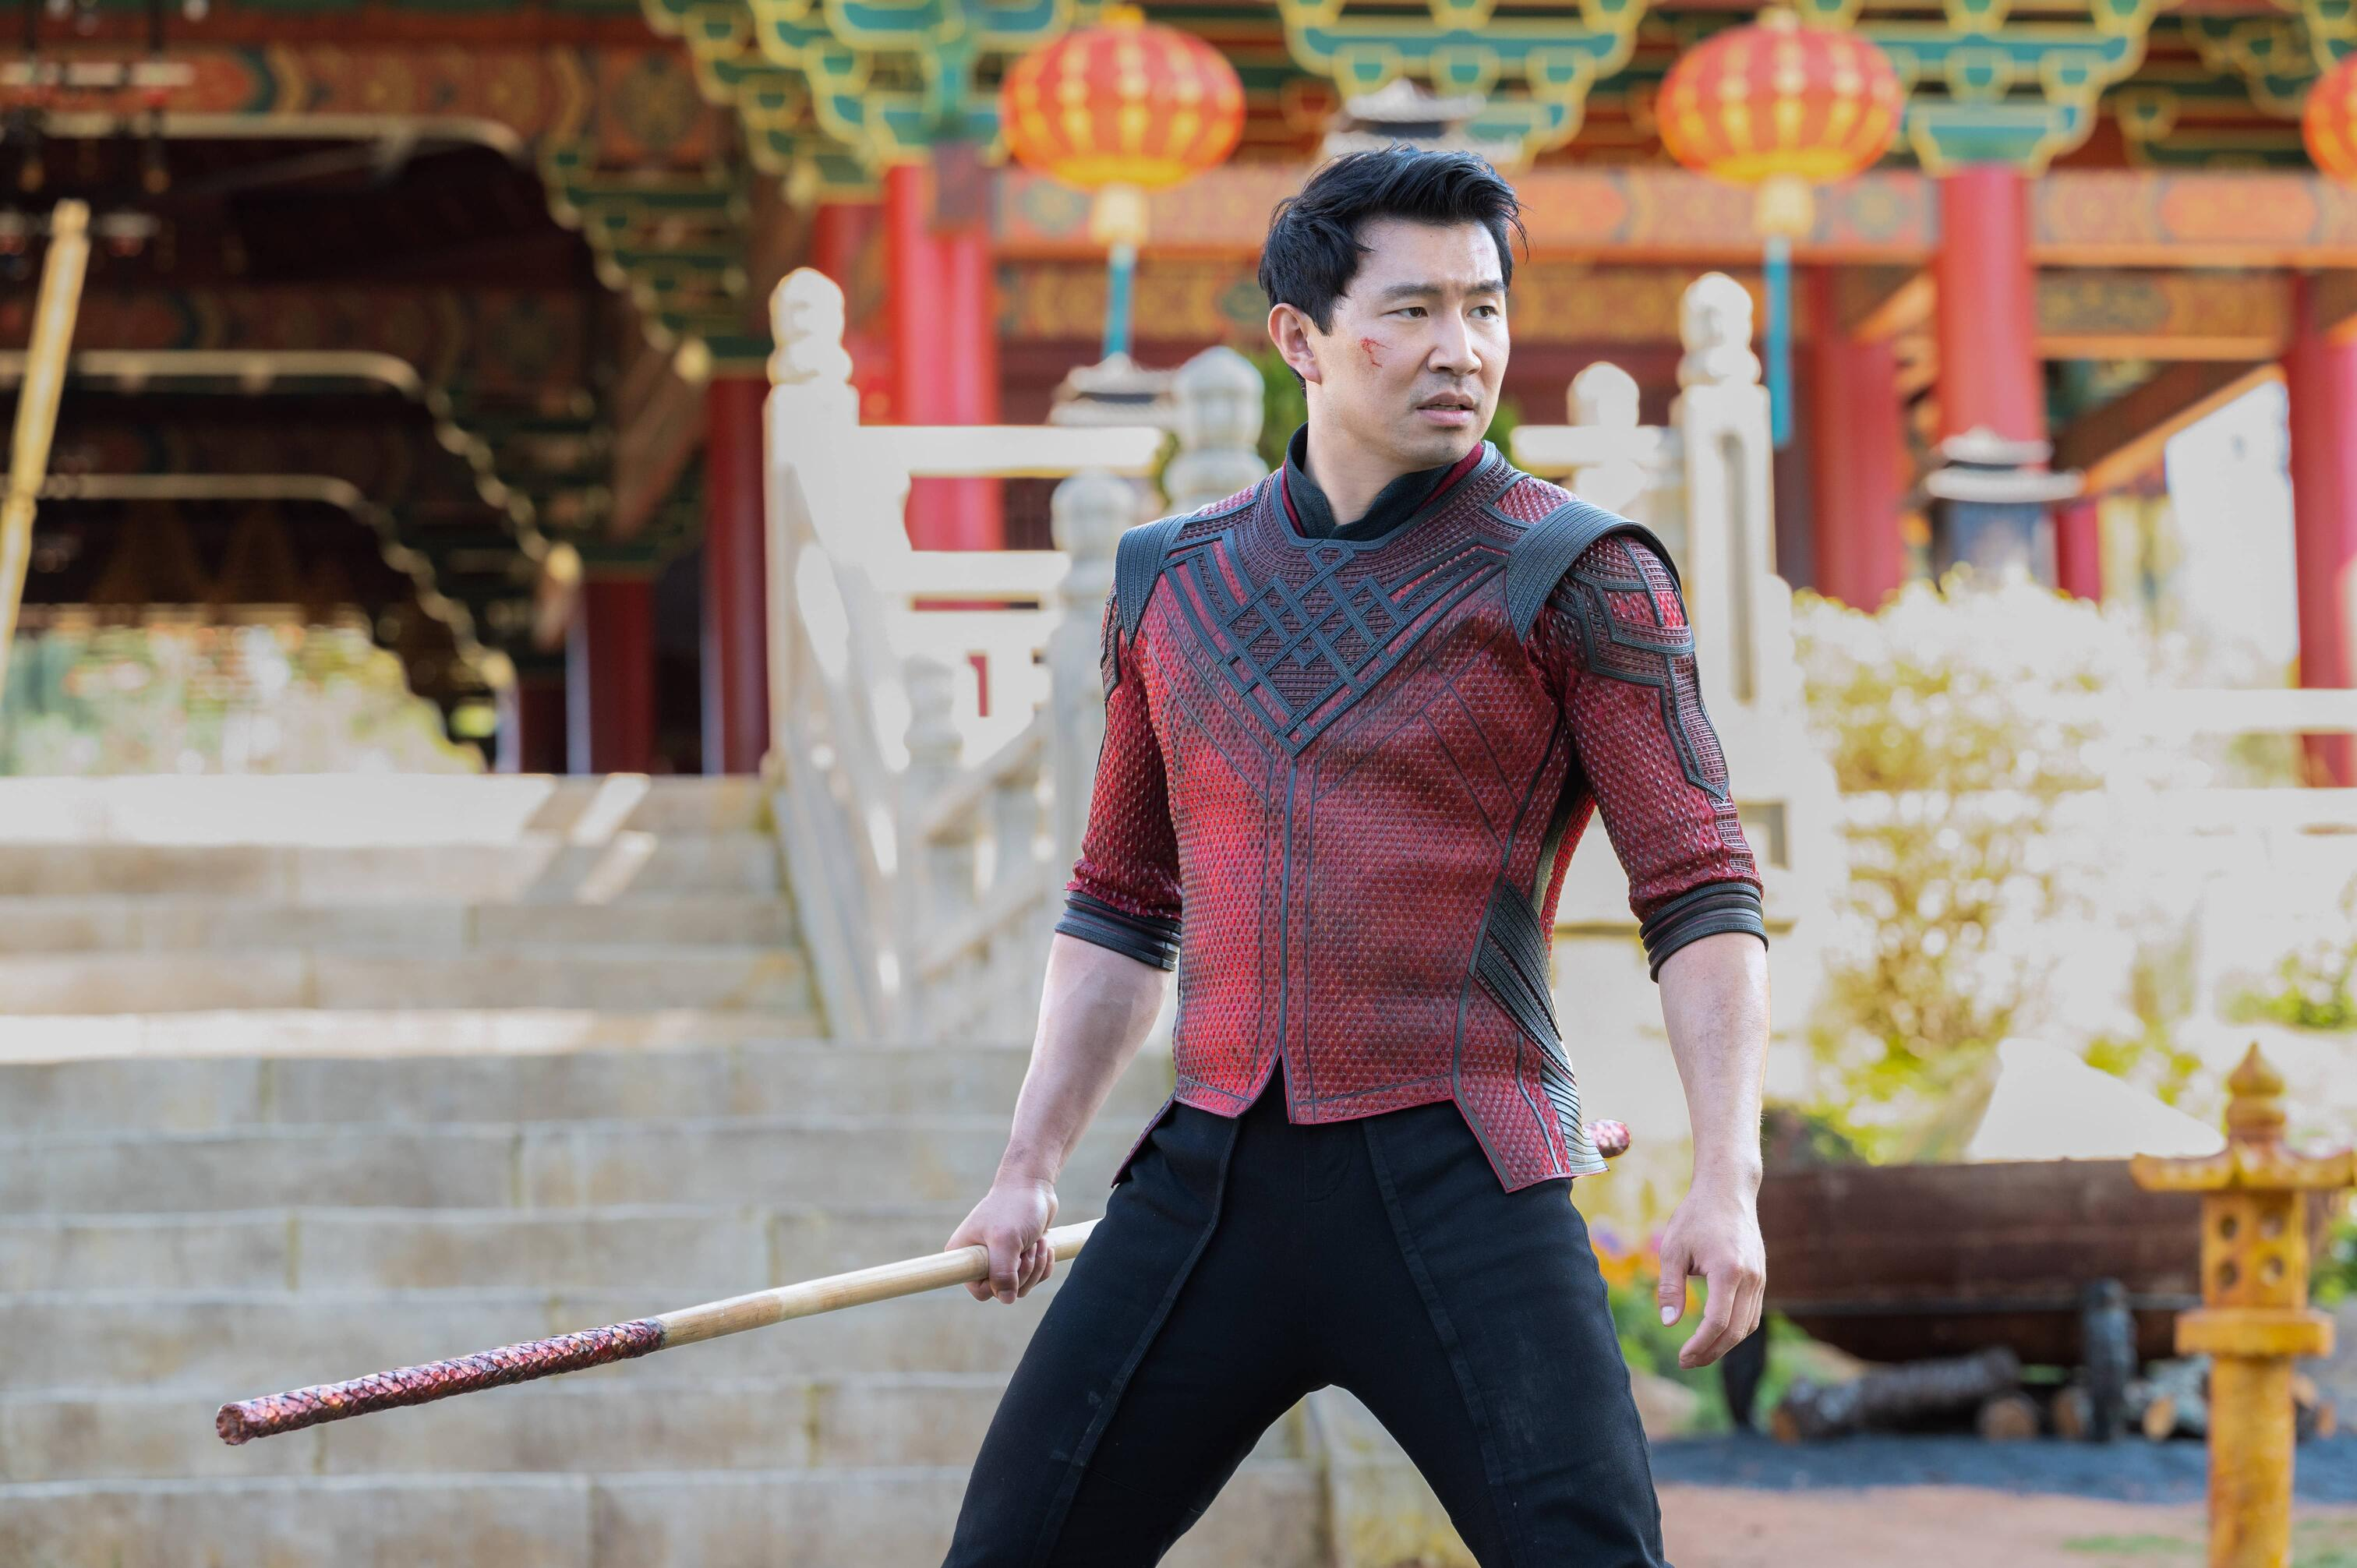 A still from 'Shang-Chi' of Simu Liu as Shang-Chi about to fight Wenwu